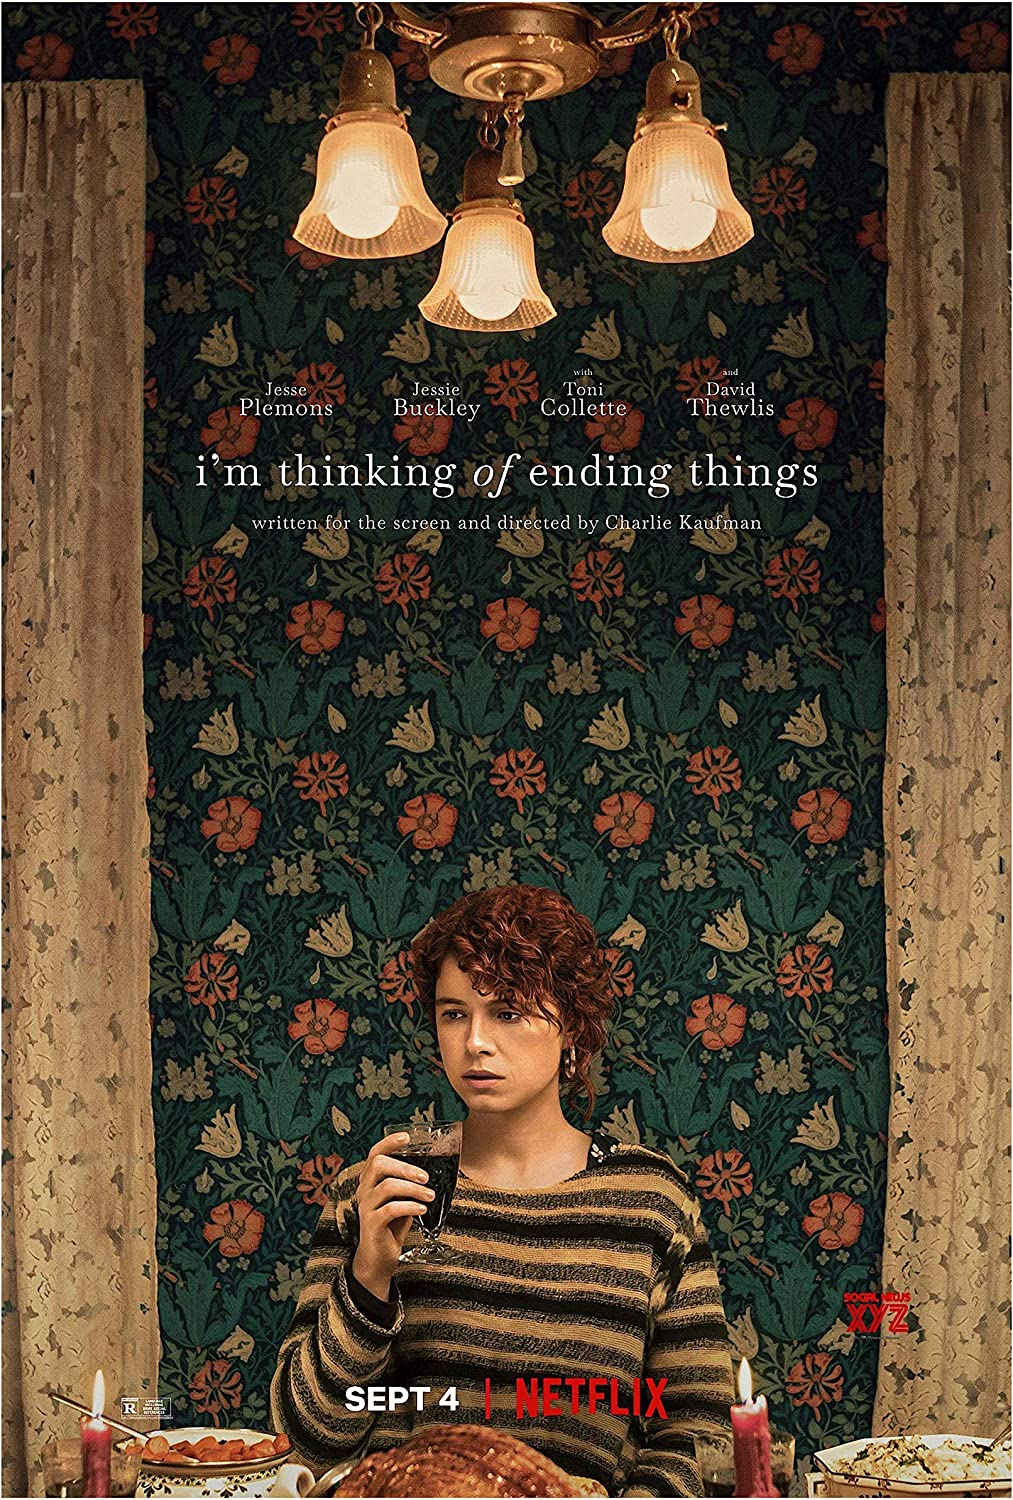 Amazon.com : I'm Thinking of Ending Things Movie Poster Quality Glossy  Print Photo Art Jessie Buckley, Toni Collette Charlie Kaufman Size 22x28#1  : Everything Else